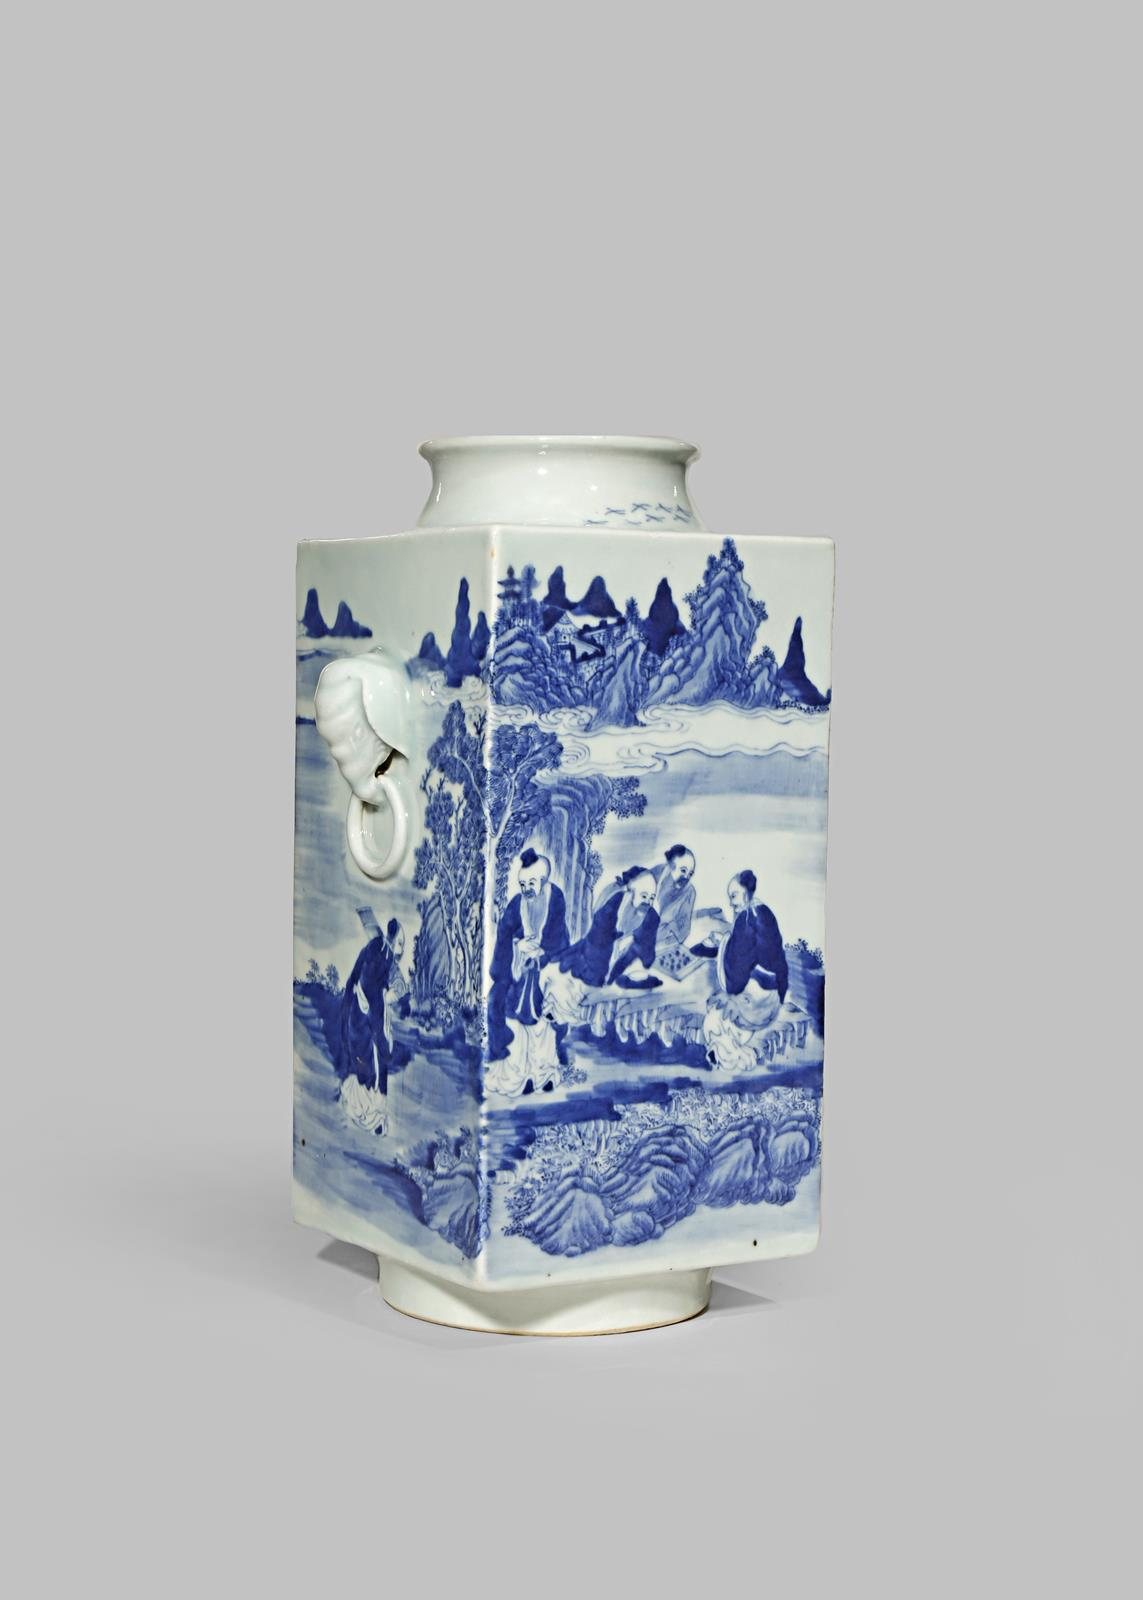 A CHINESE BLUE AND WHITE CONG-SHAPED VASE